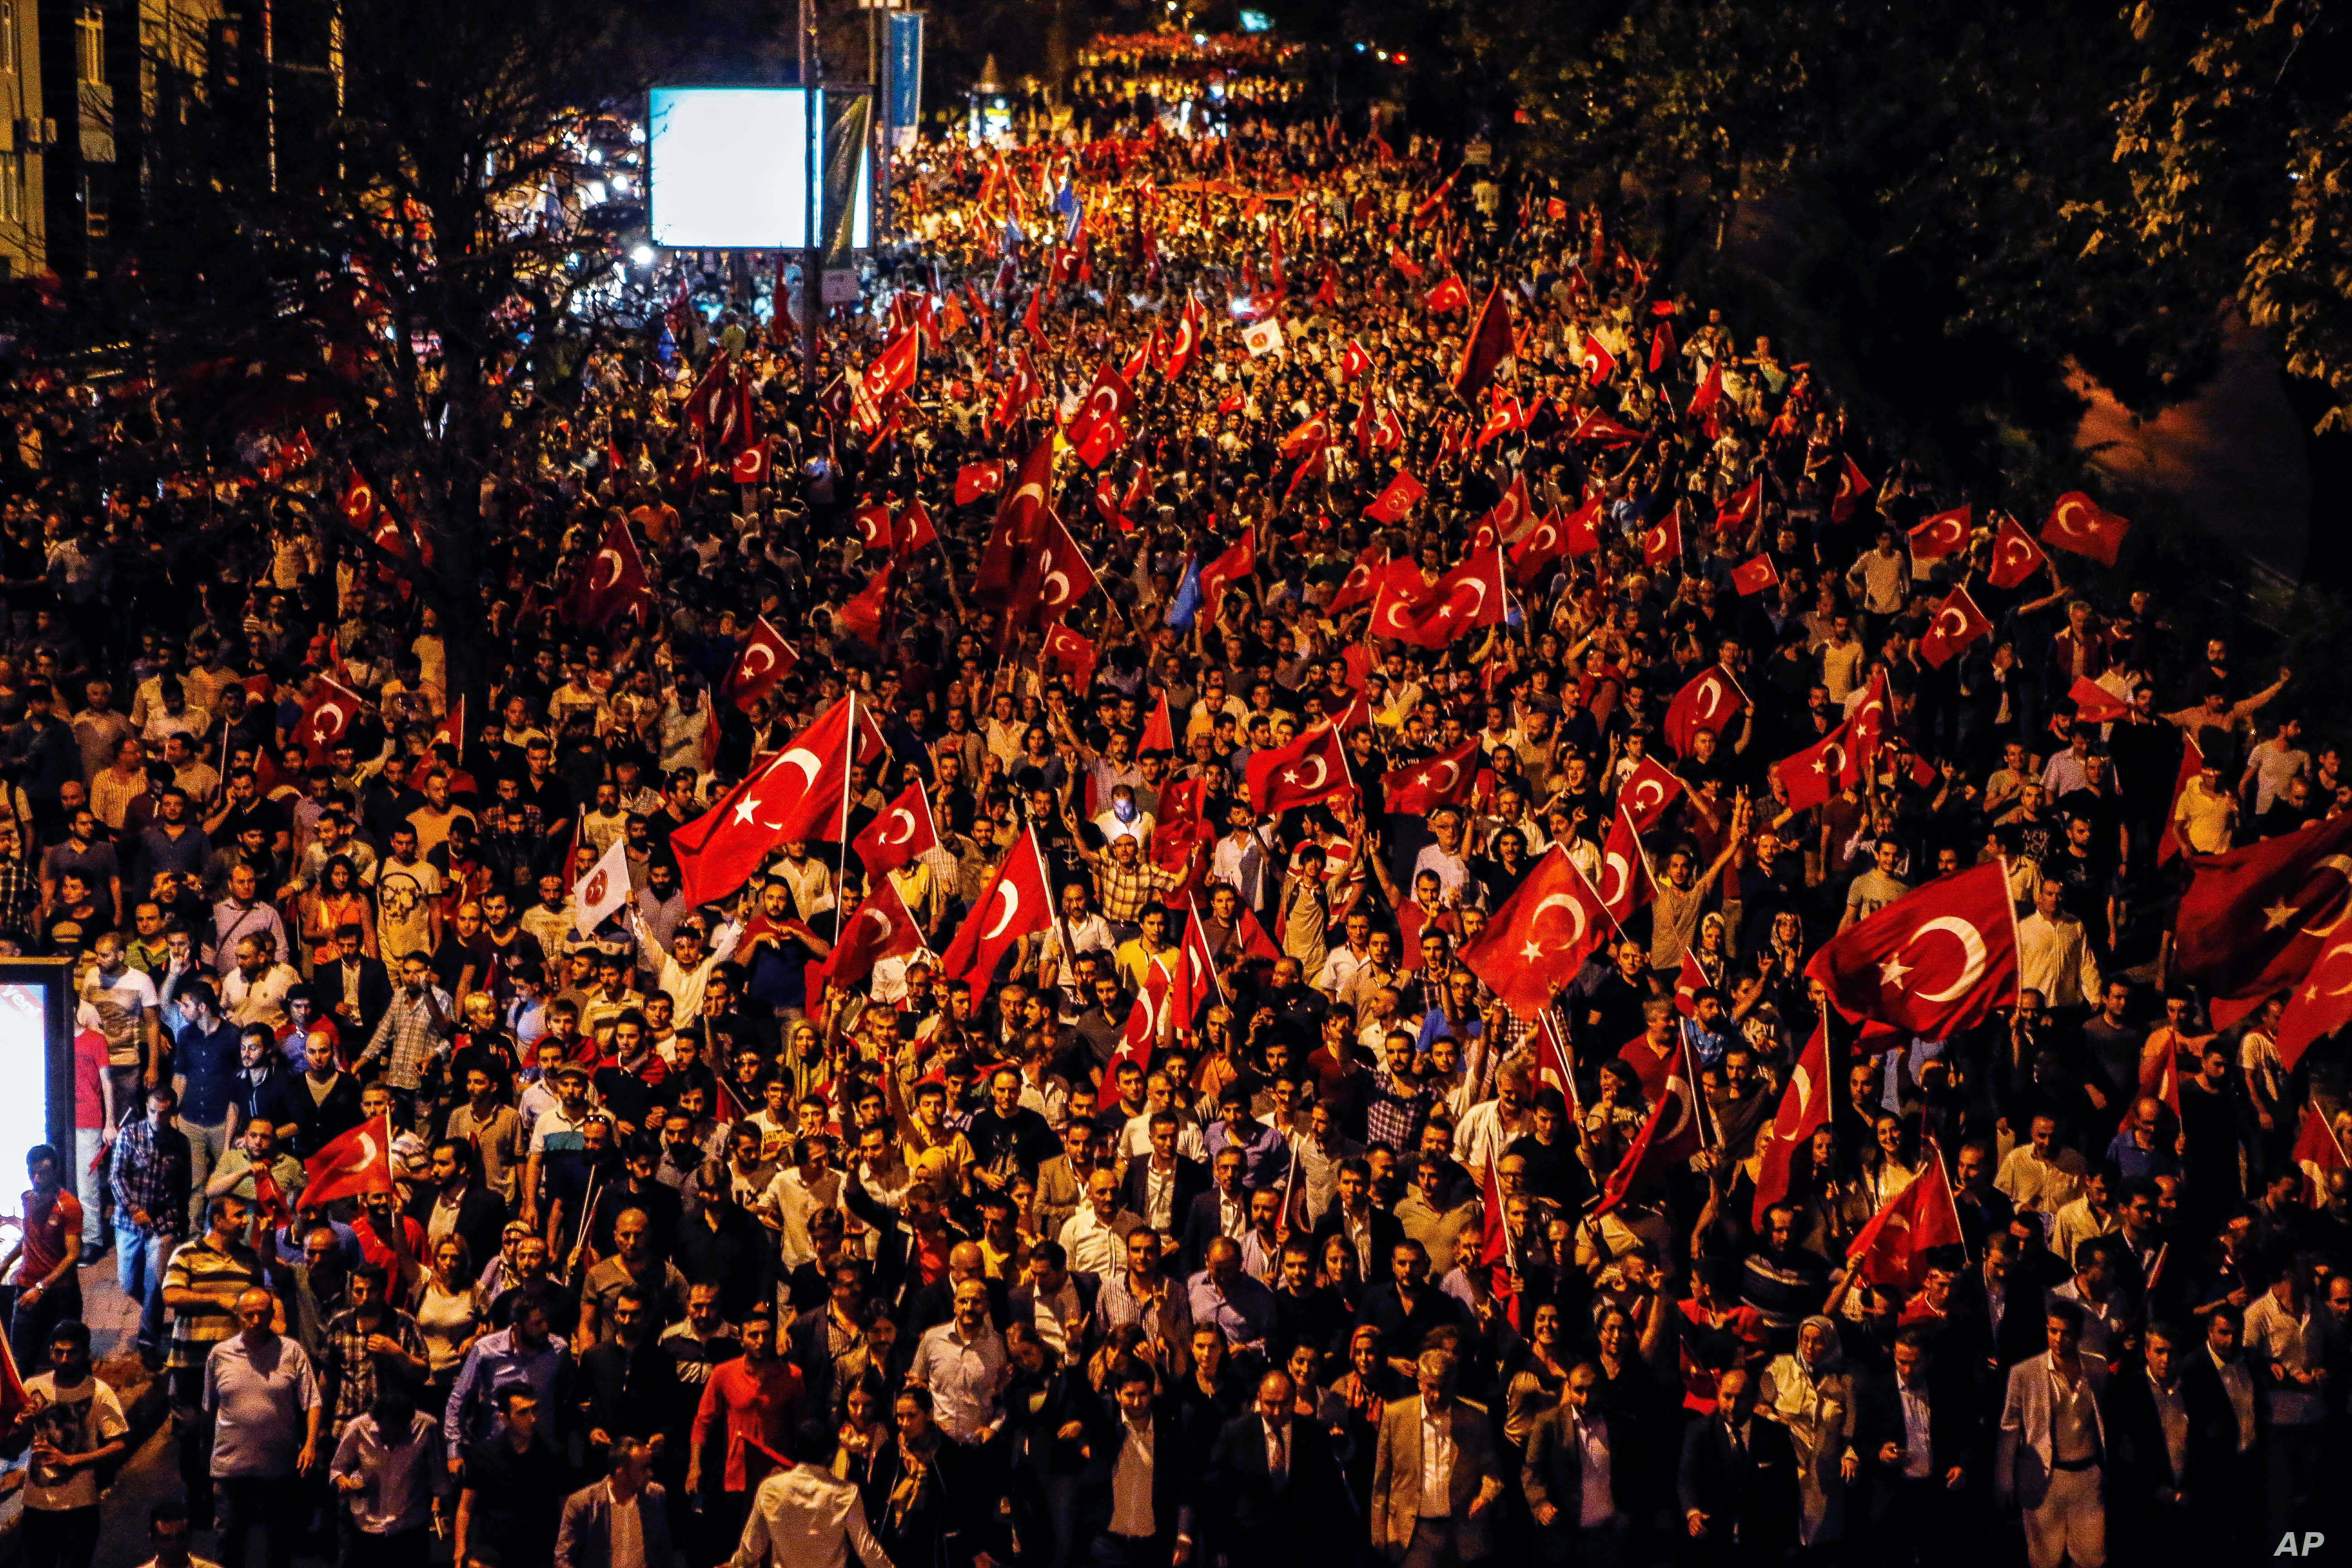 Thousands of people march to protest against the deadly attacks on Turkish troops, in Istanbul, Turkey, Sept. 8, 2015.